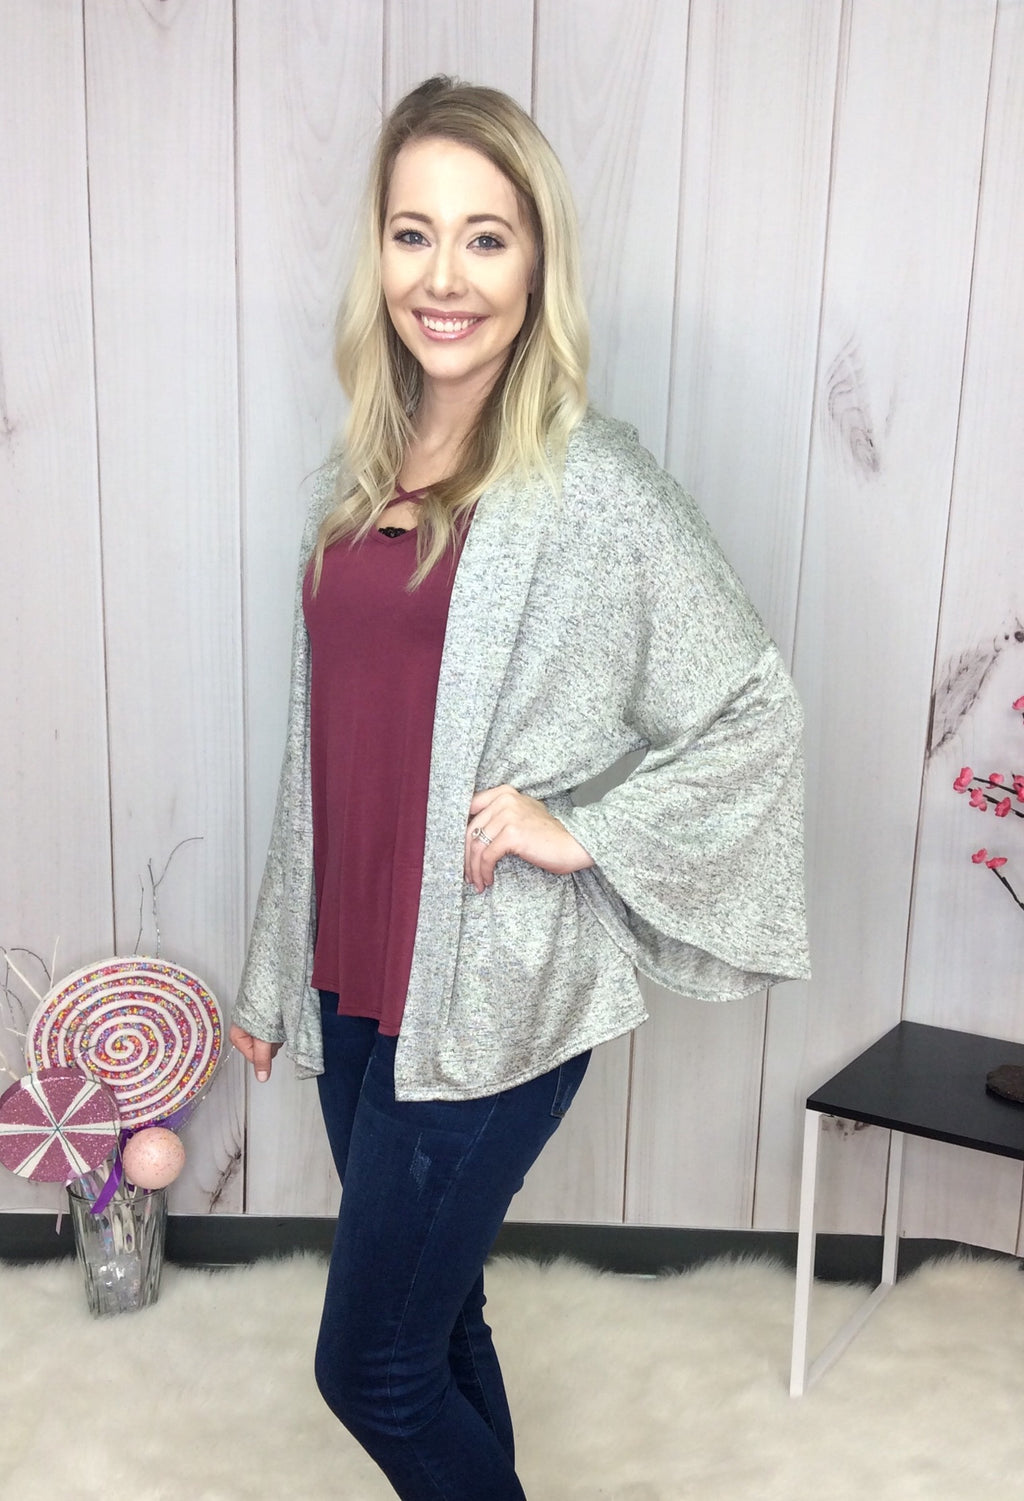 Classic With A Twist Bell Sleeve Open Cardigan - FINAL SALE CLEARANCE